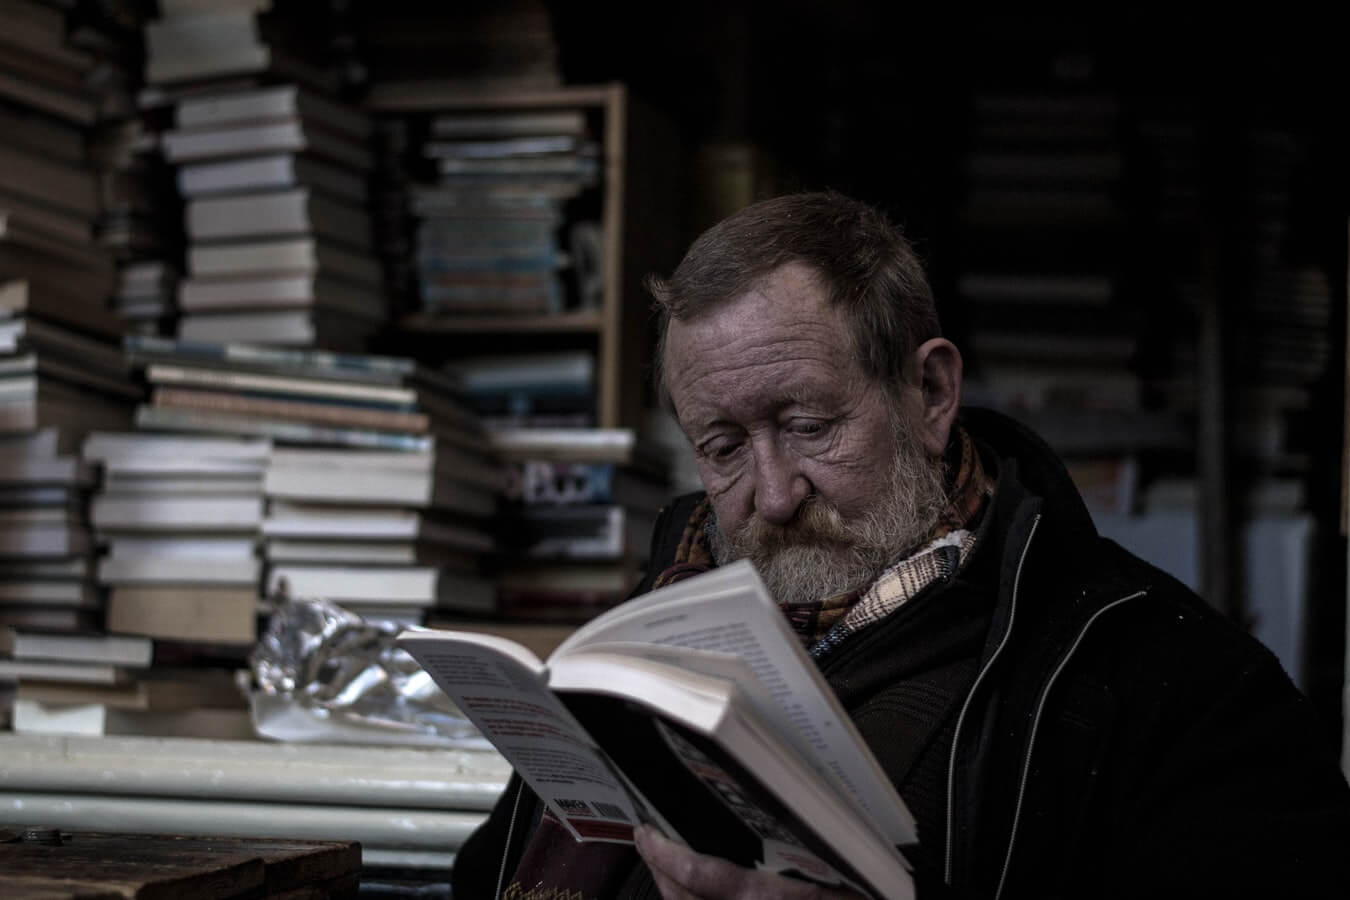 An older man reading about financial planning for seniors.